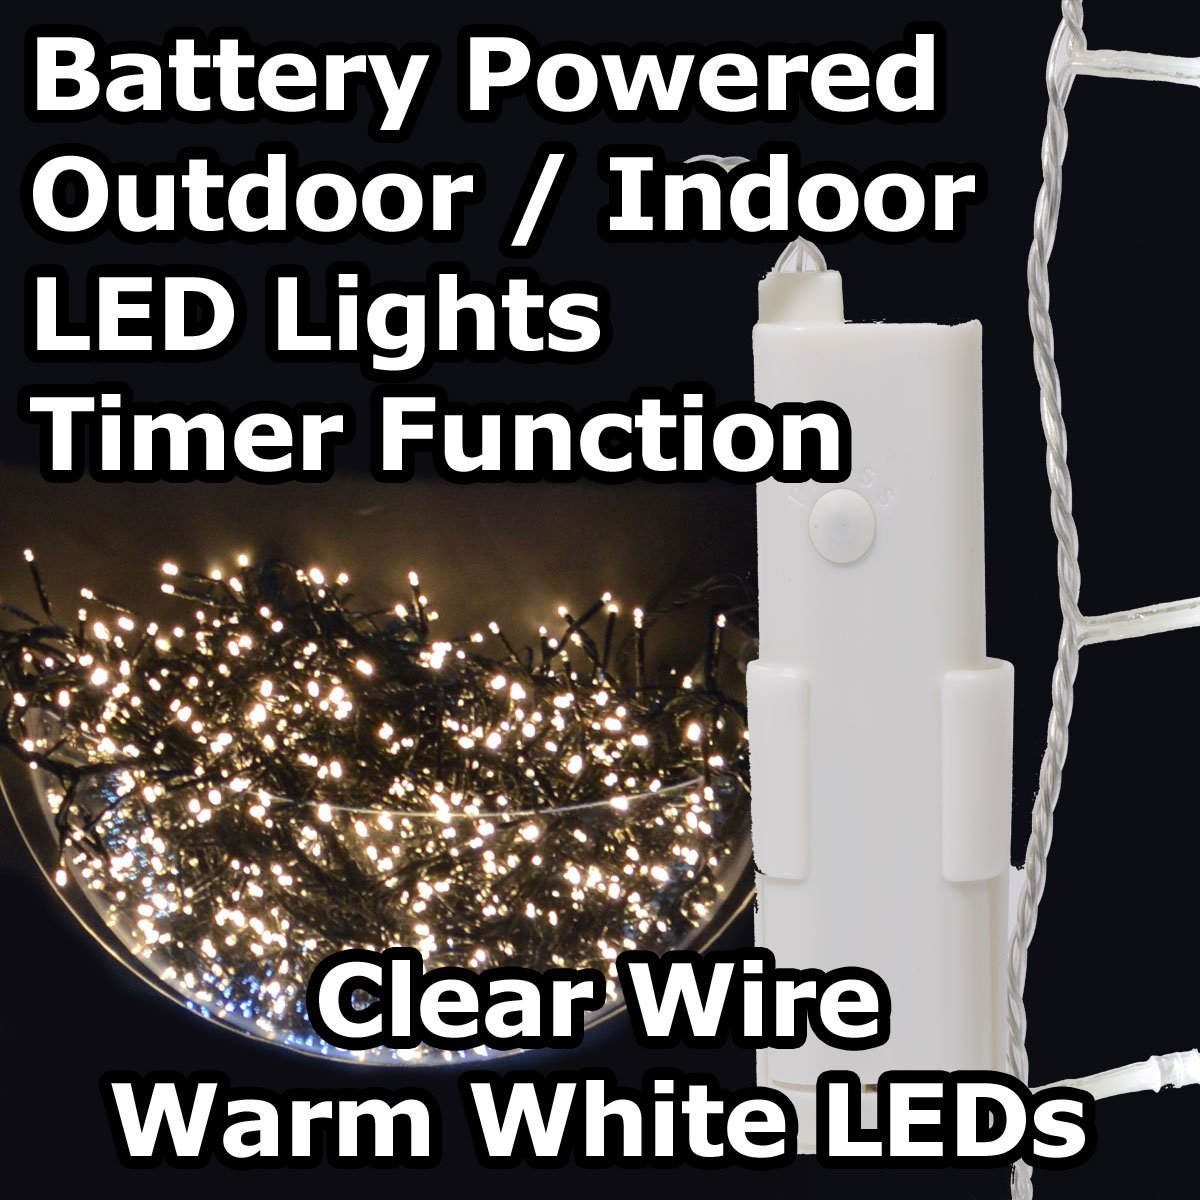 24 white led 17m battery operated outdoor timer lights on clear 24 white led 17m battery operated outdoor timer lights on clear wire warm white amazon lighting mozeypictures Choice Image